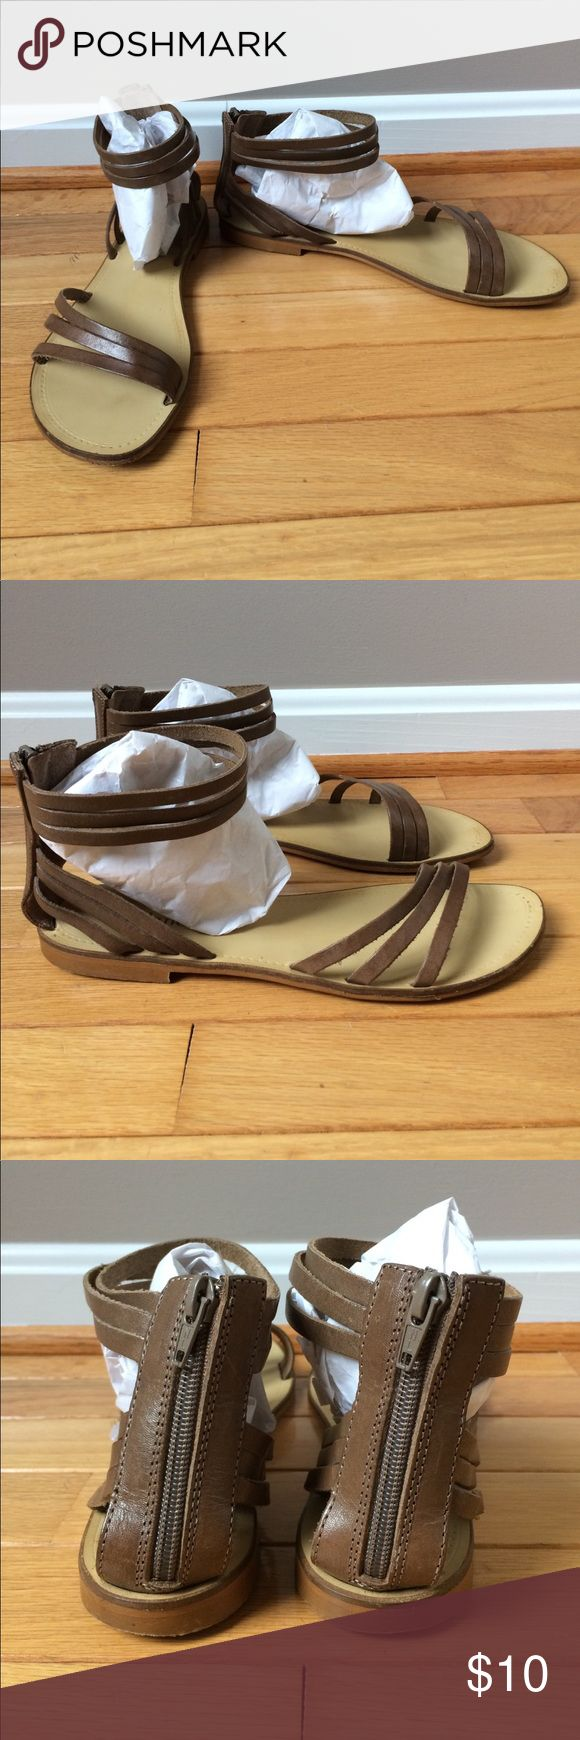 Sundance Leather Sandals Lightly used, strappy, ankle wrap sandals in a medium brown leather. Sundance Shoes Sandals